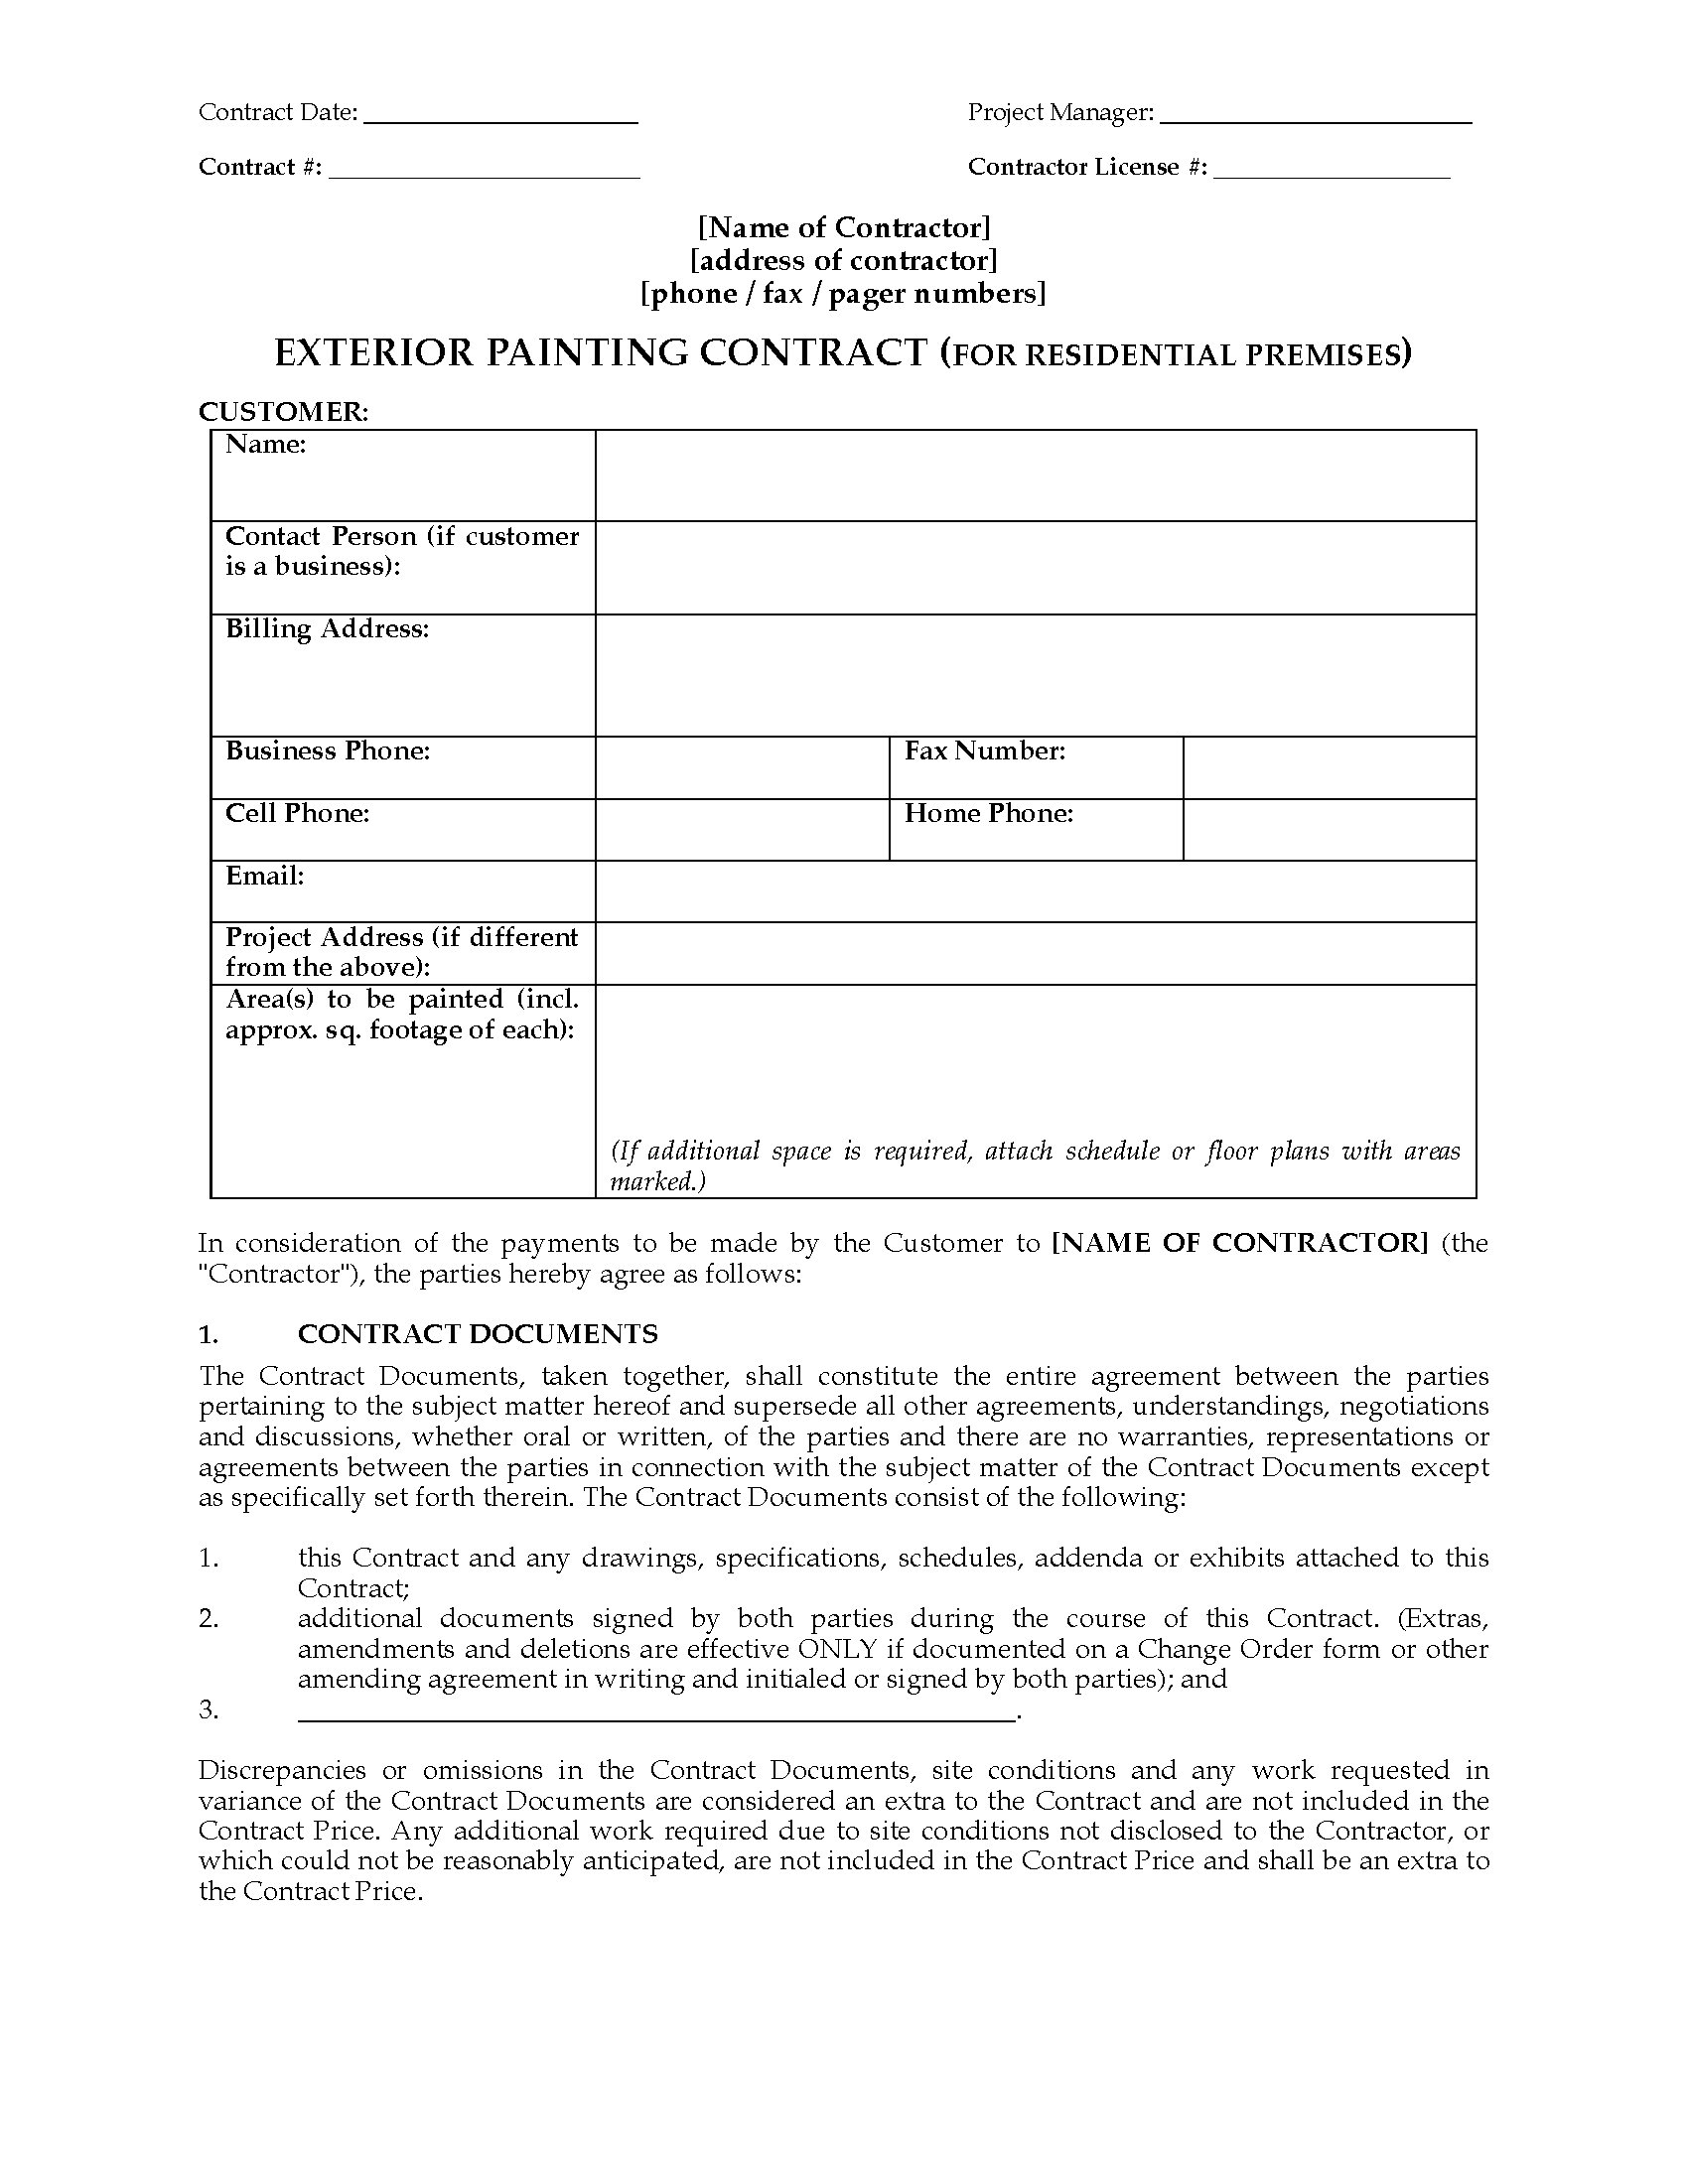 exterior painting contract residential legal forms and